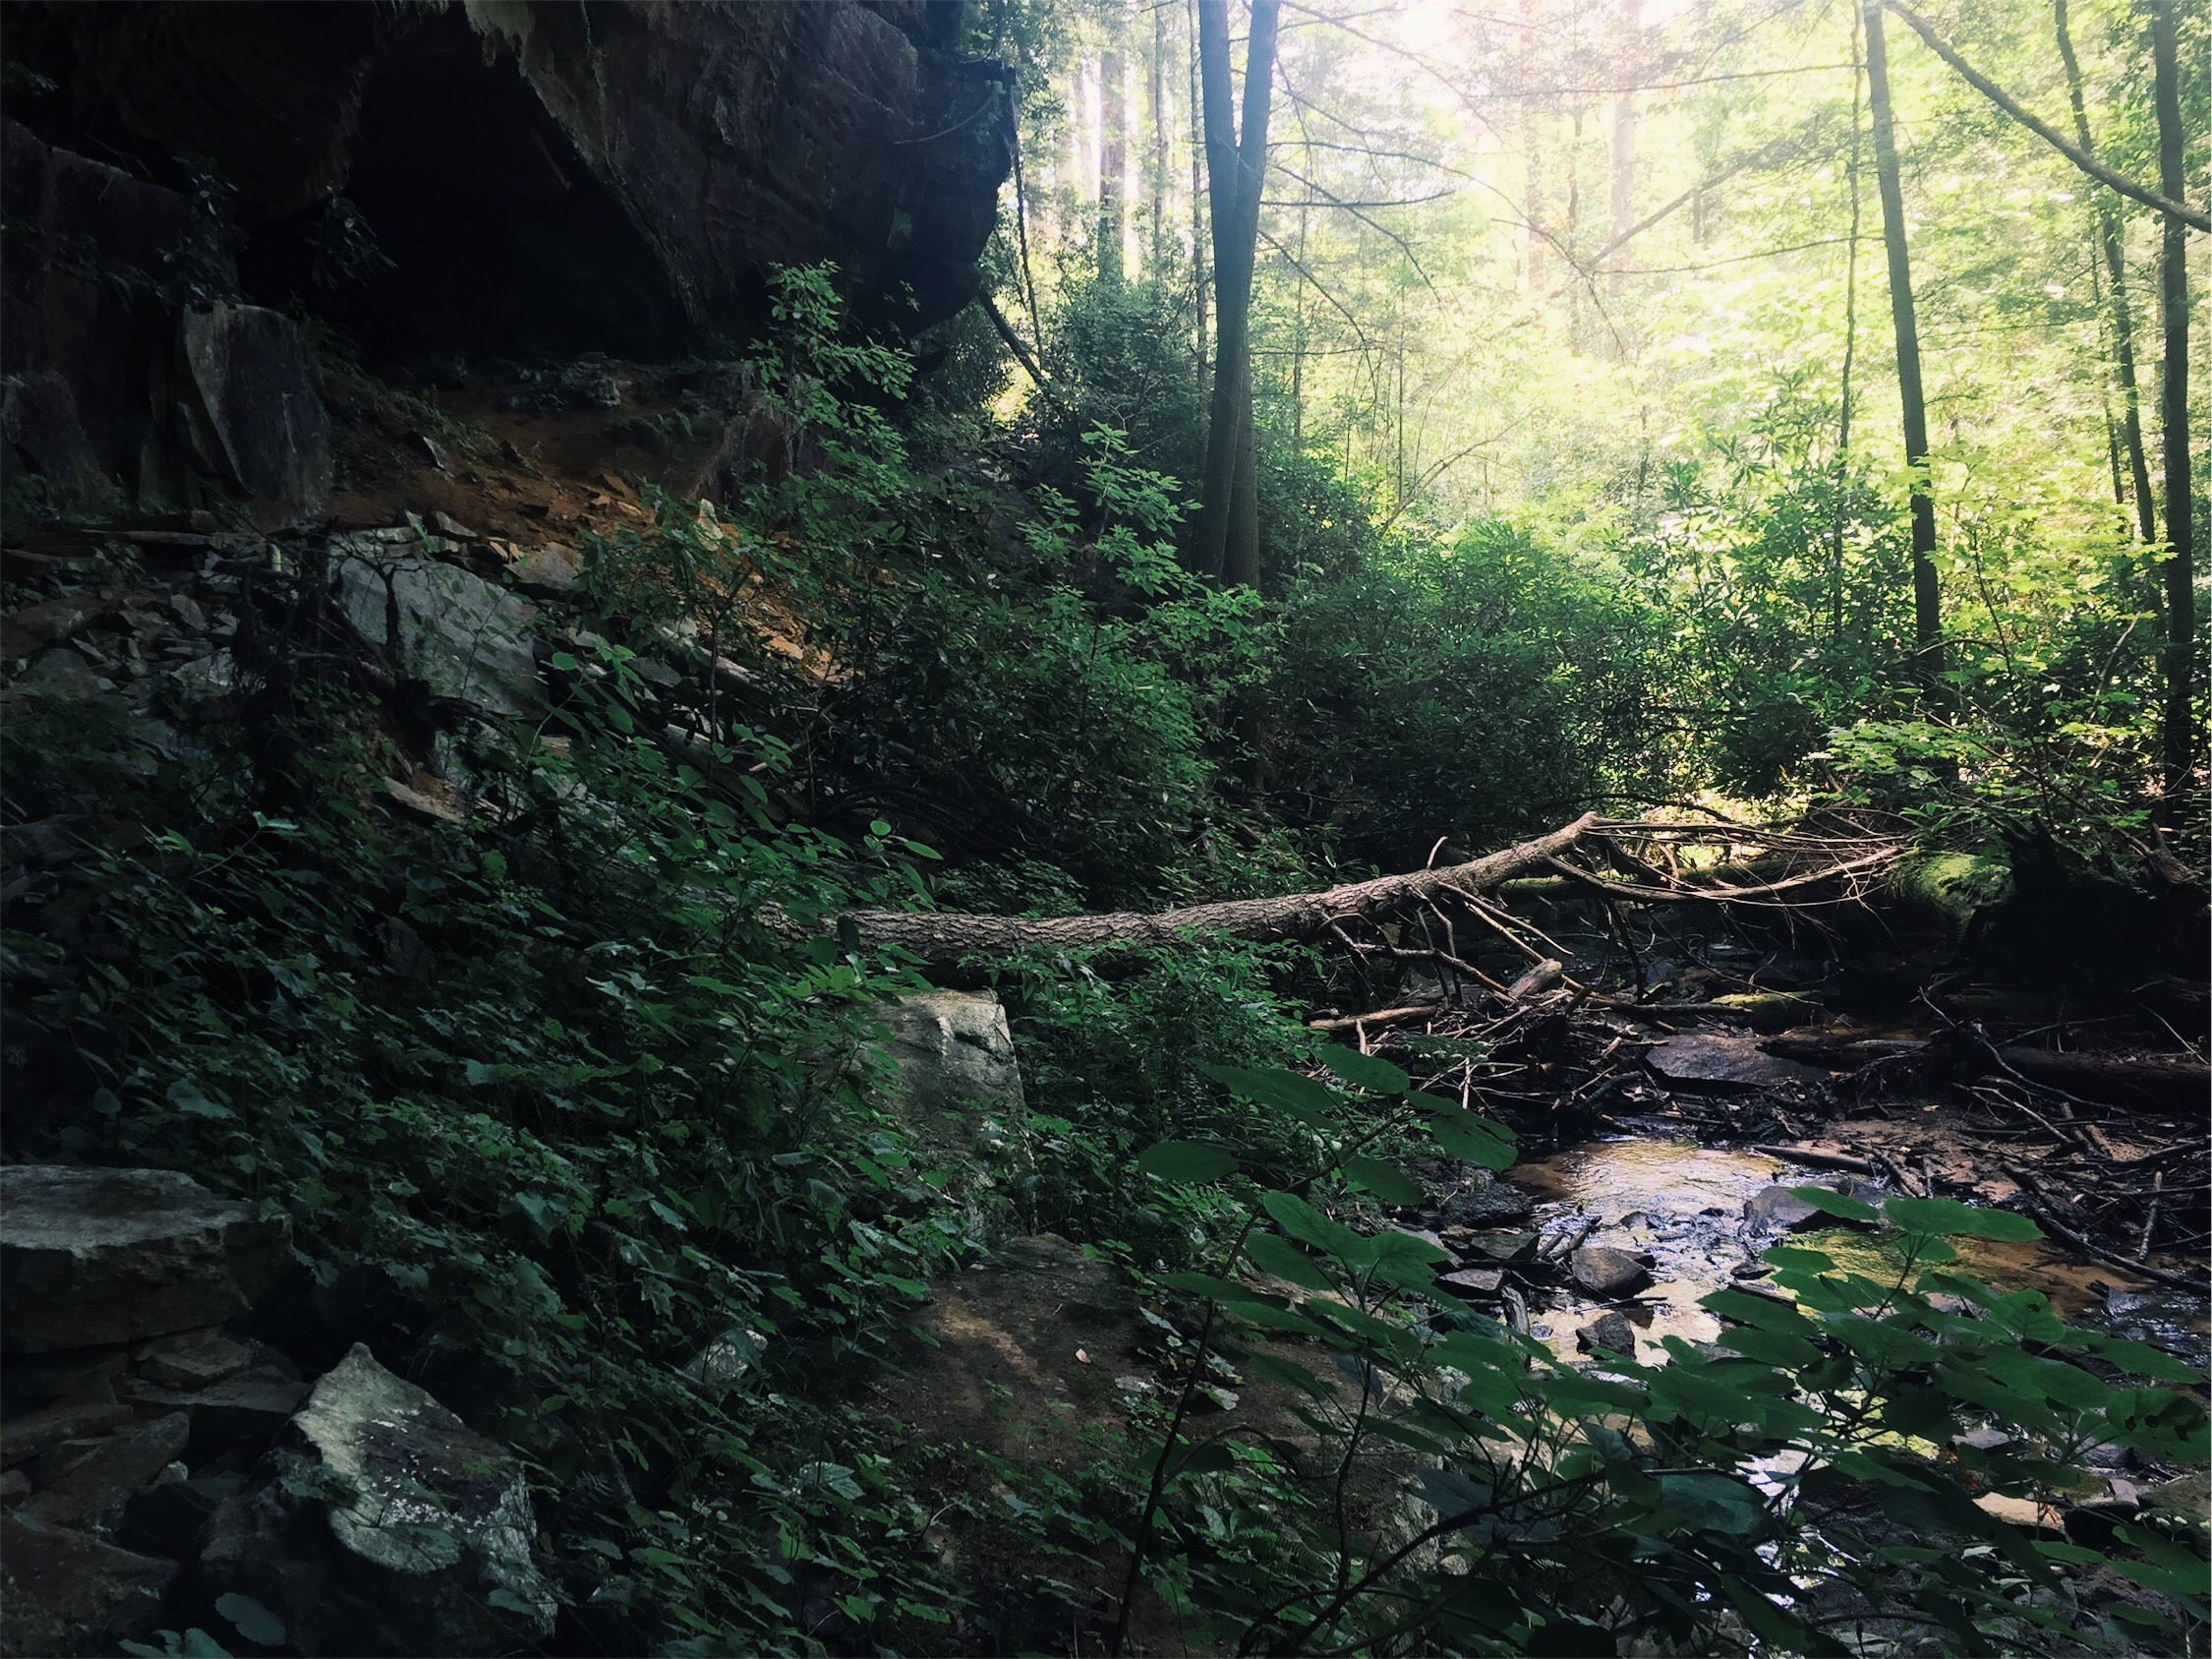 Priya the Blog, Nashville blogger, August 2017 update, Big South Fork state park